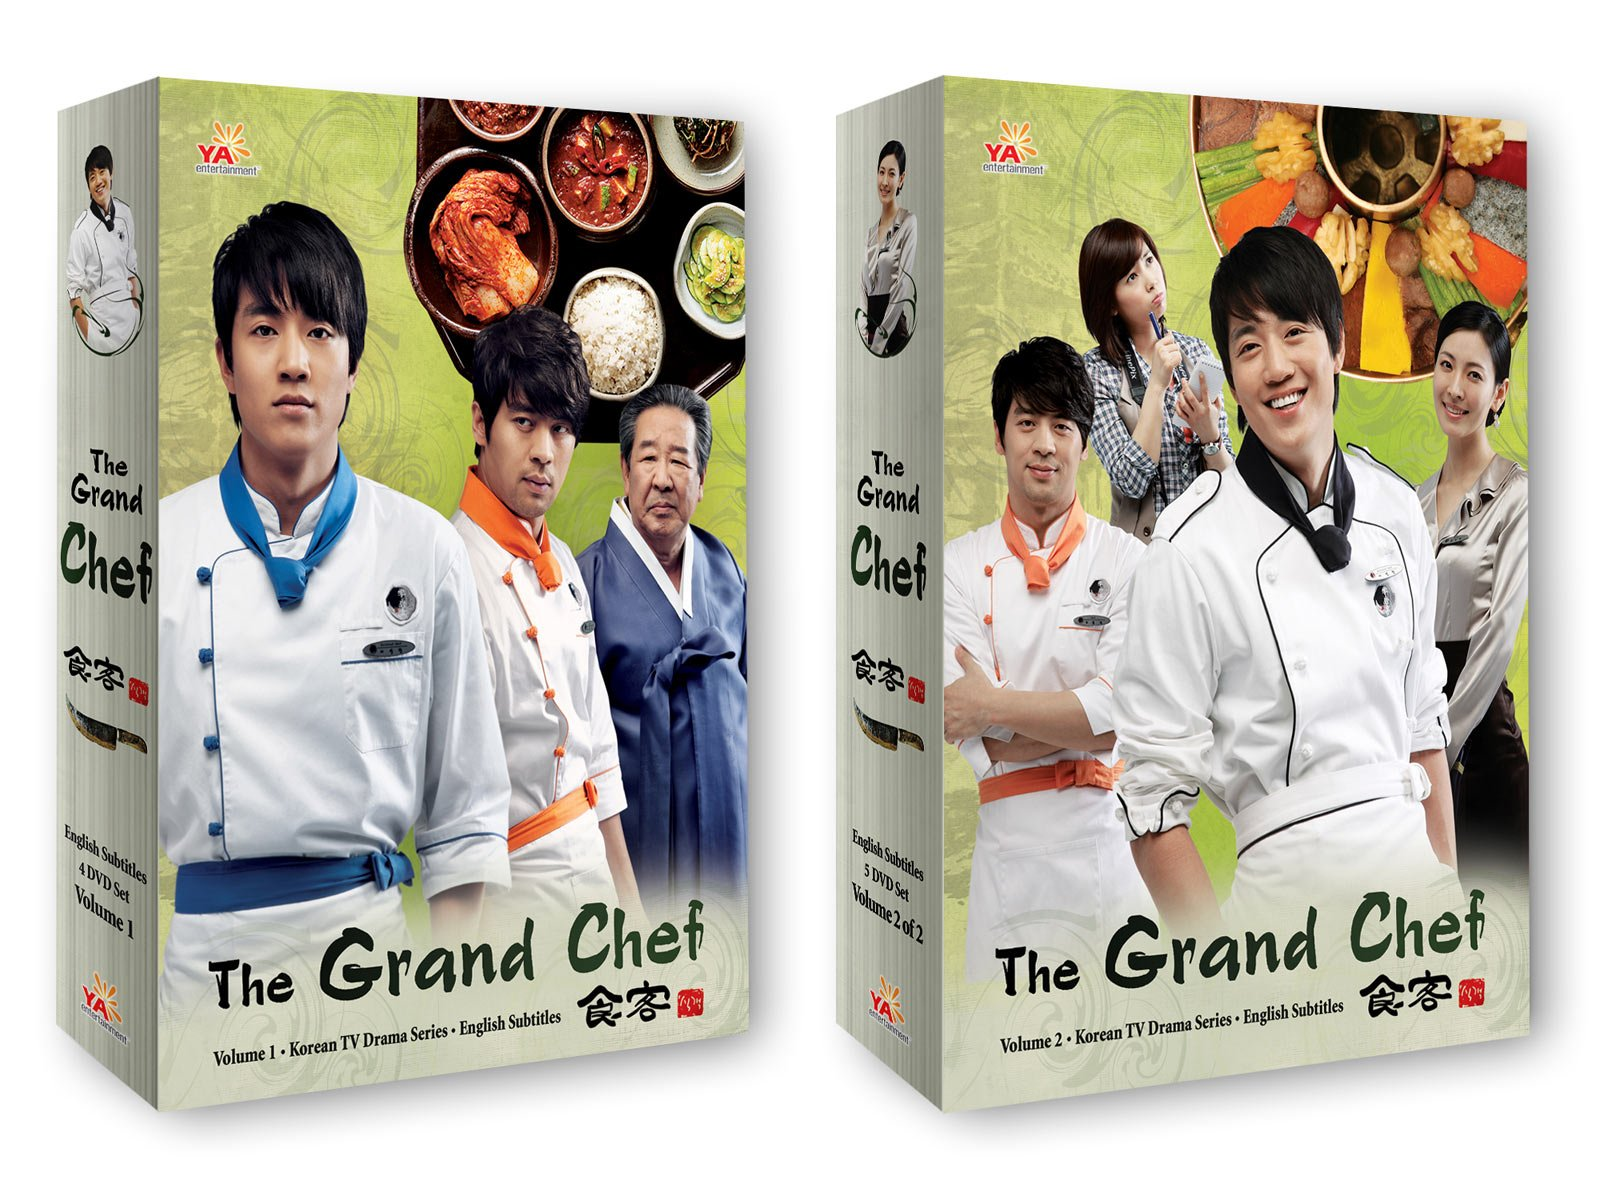 Korean TV Drama 2-pack: The Grand Chef Vol 1 + Vol 2 by YA Entertainment